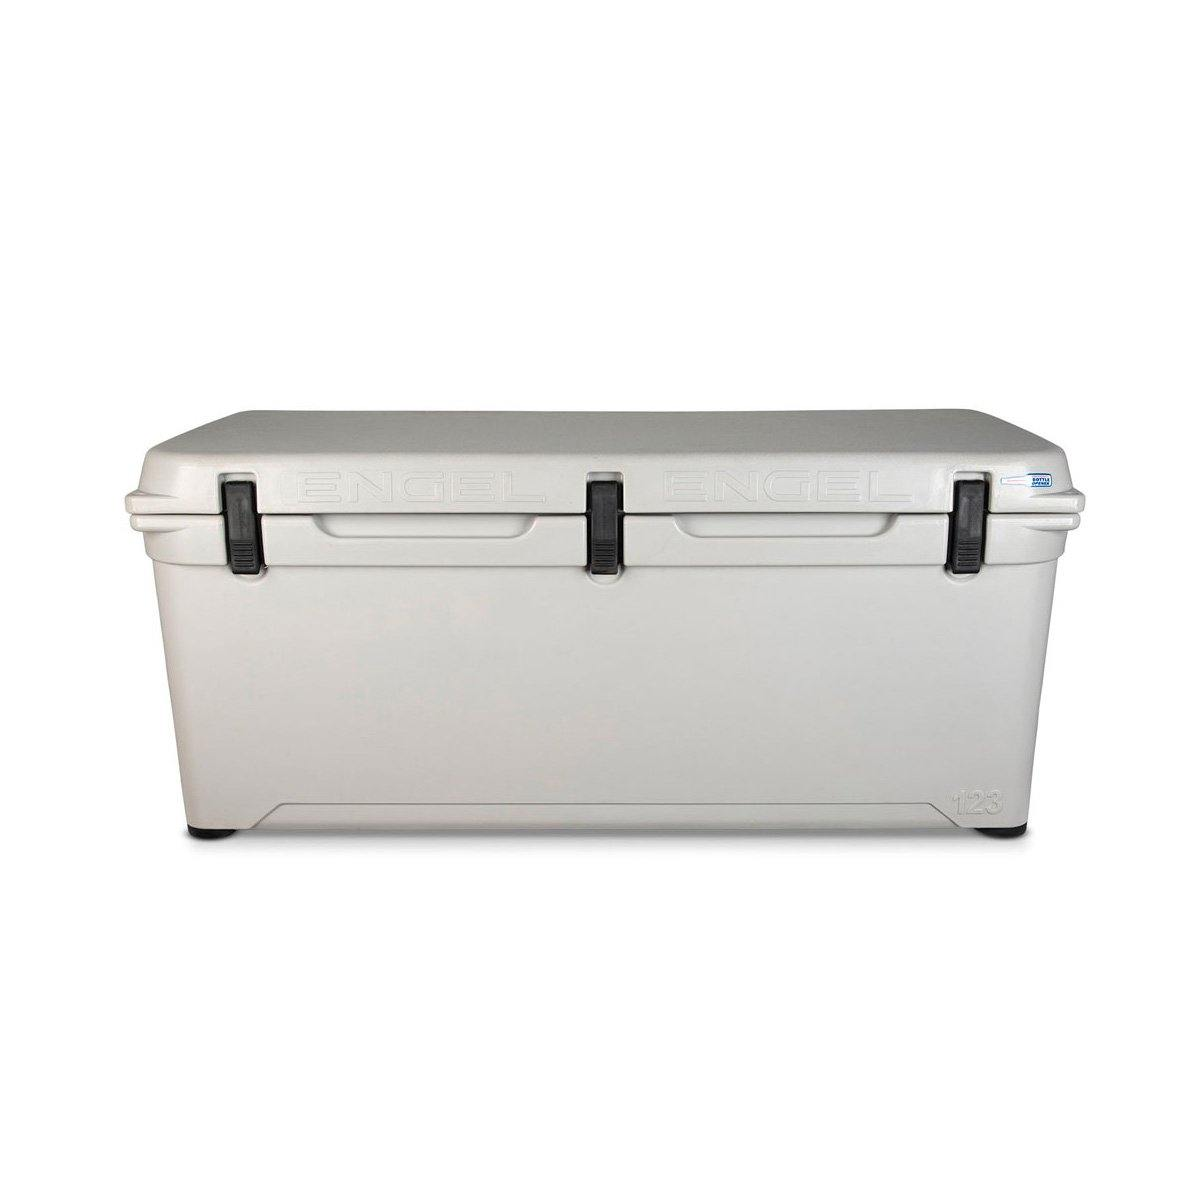 Engel 123 Hard Cooler (4349822337096)